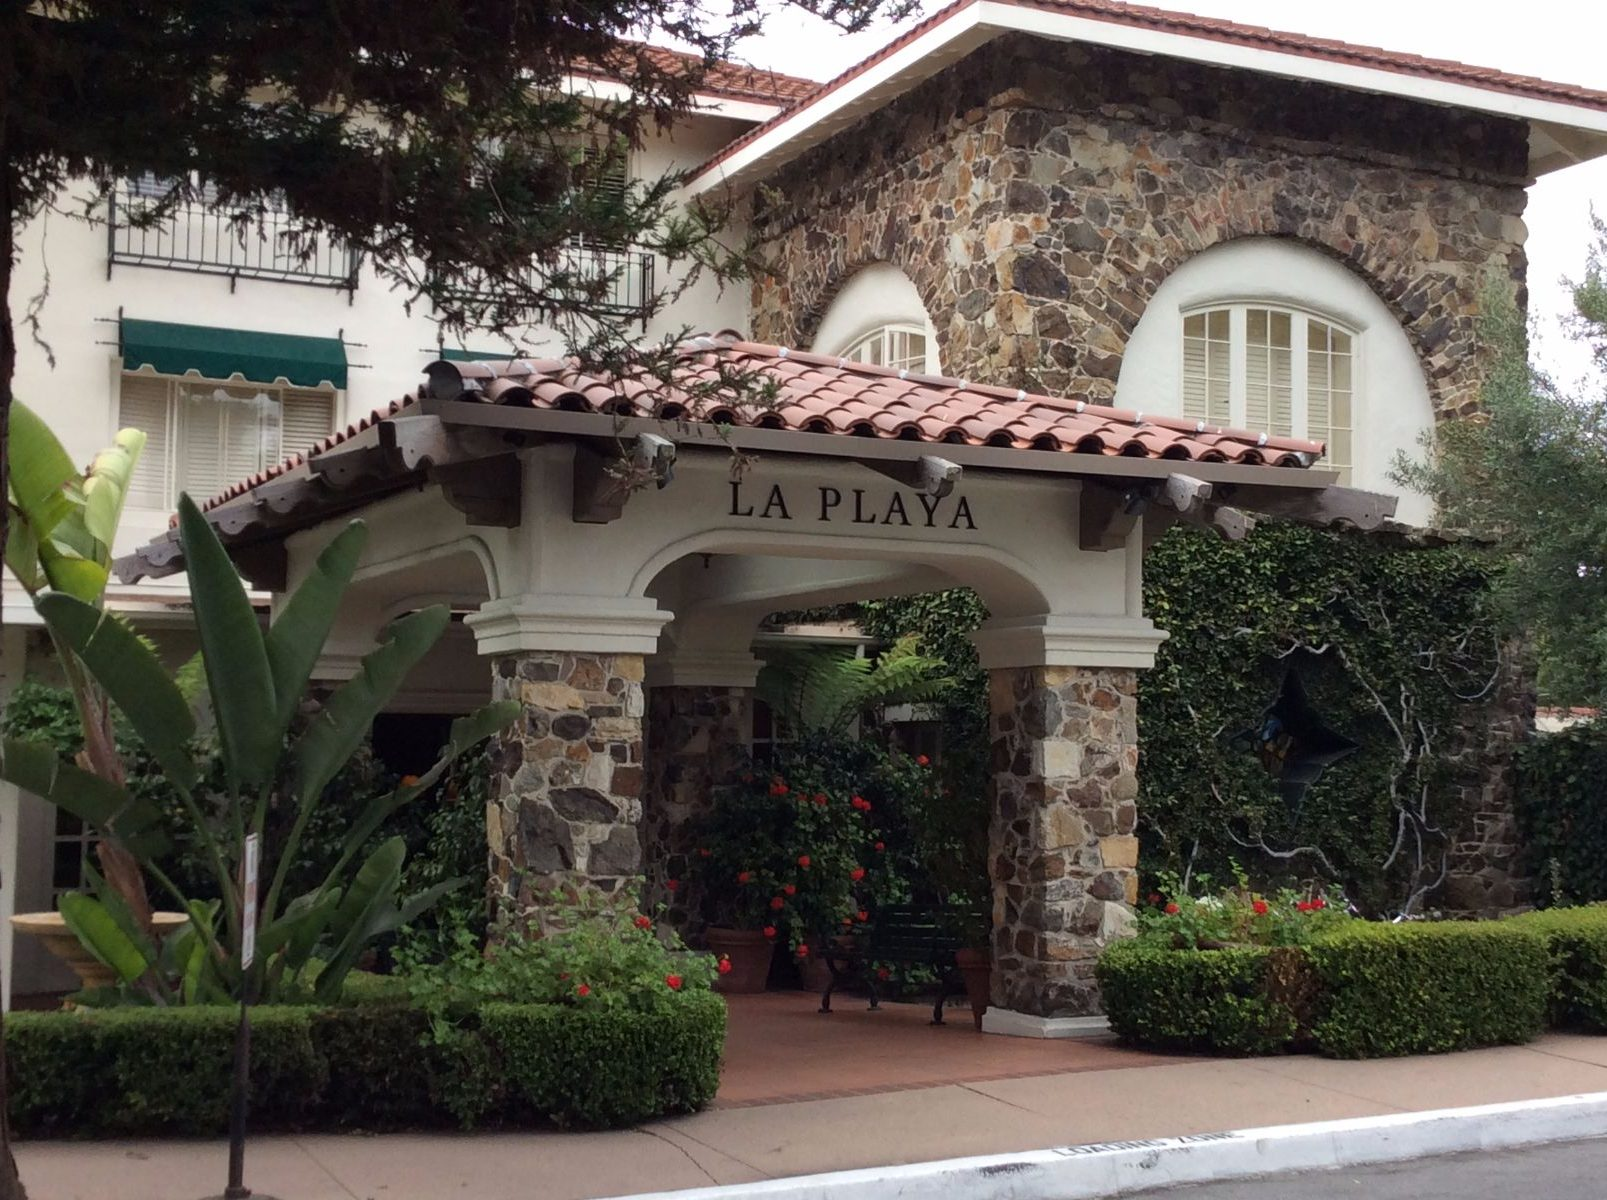 La Playa Carmel Historic Hotel Entrance on Camino Real in Carmel by the Sea, Ca